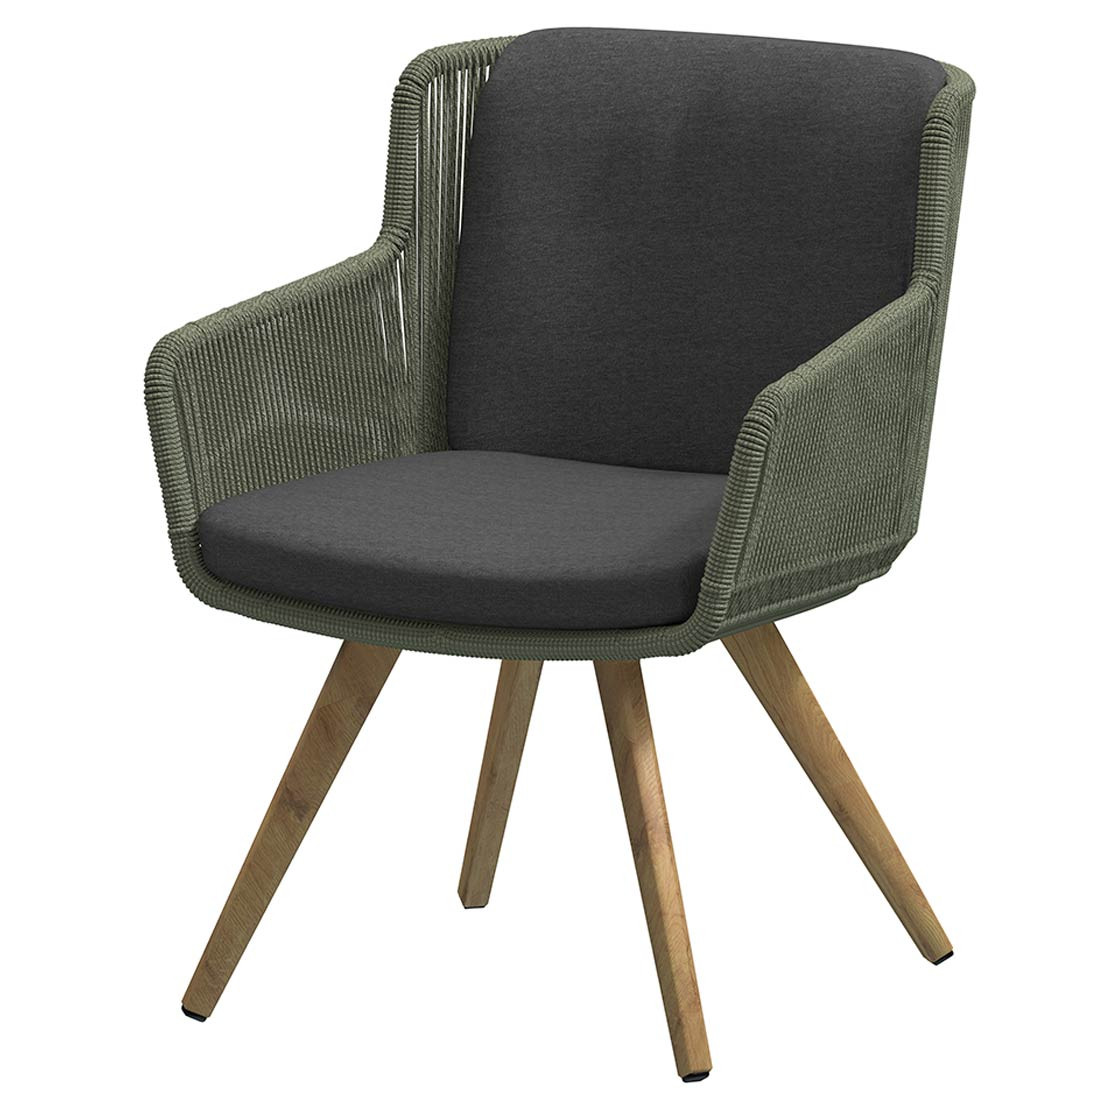 Flores dining chair Teak legs Green with 2 cushions